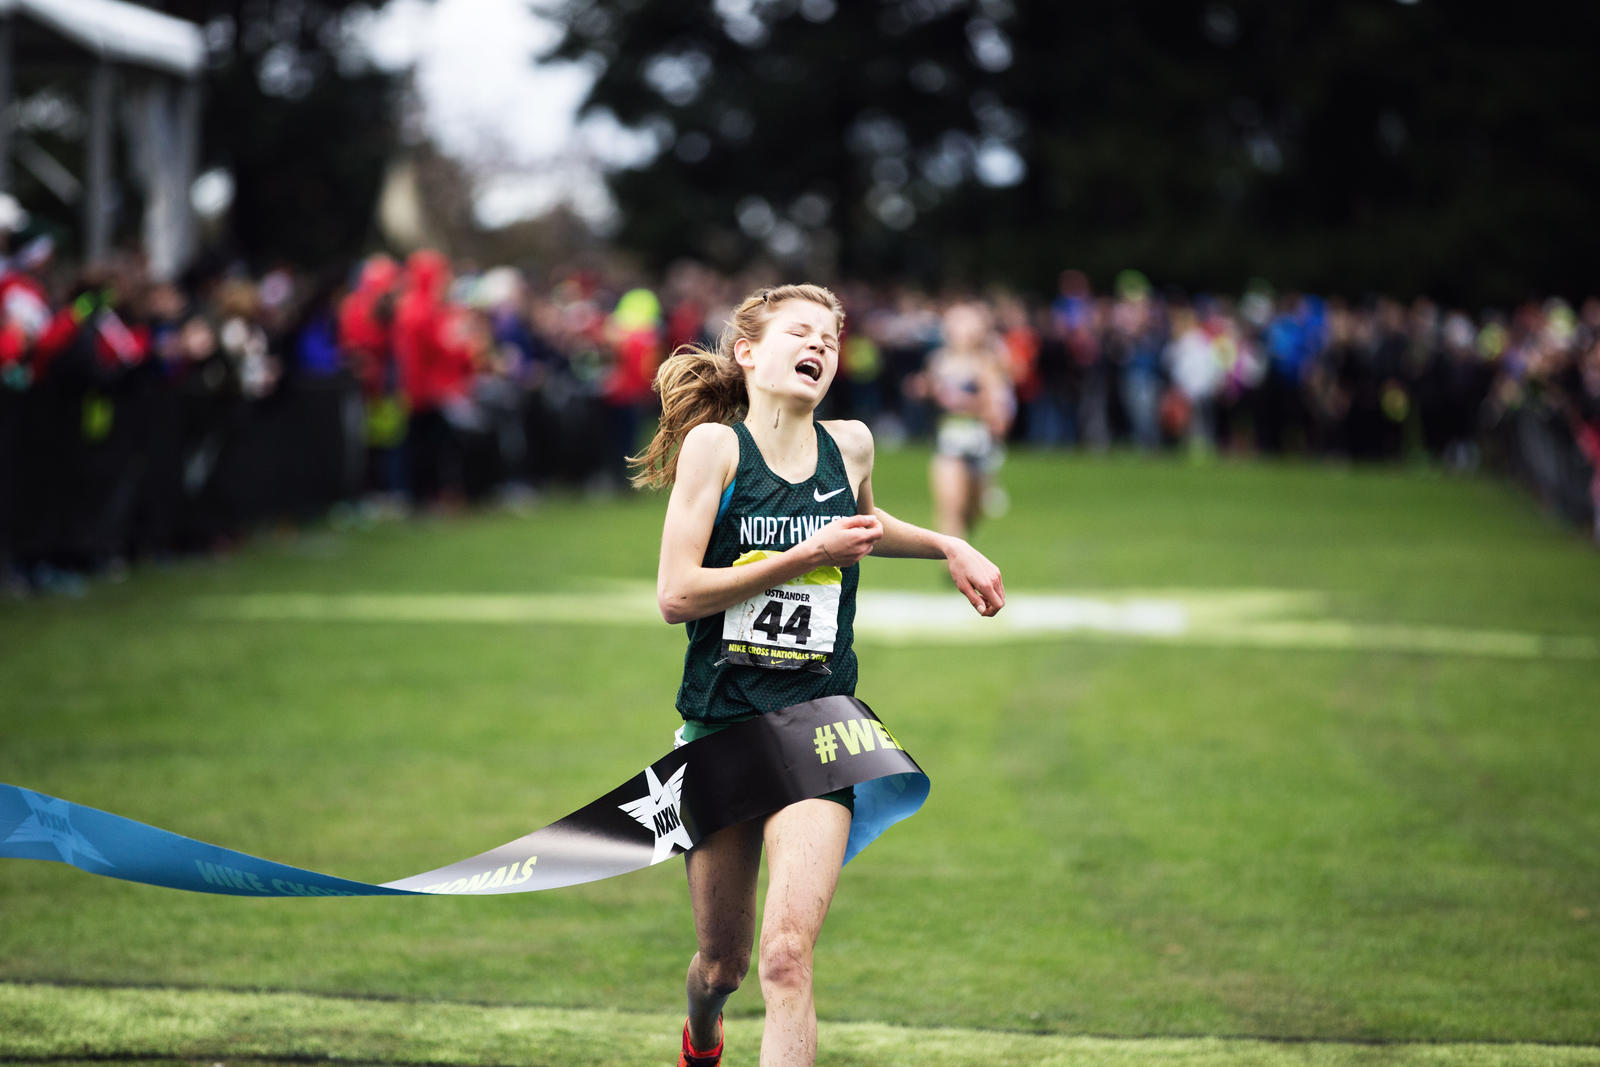 UPDATE: Eighth Grader Grace Ping WILL Race Nike Cross Nationals